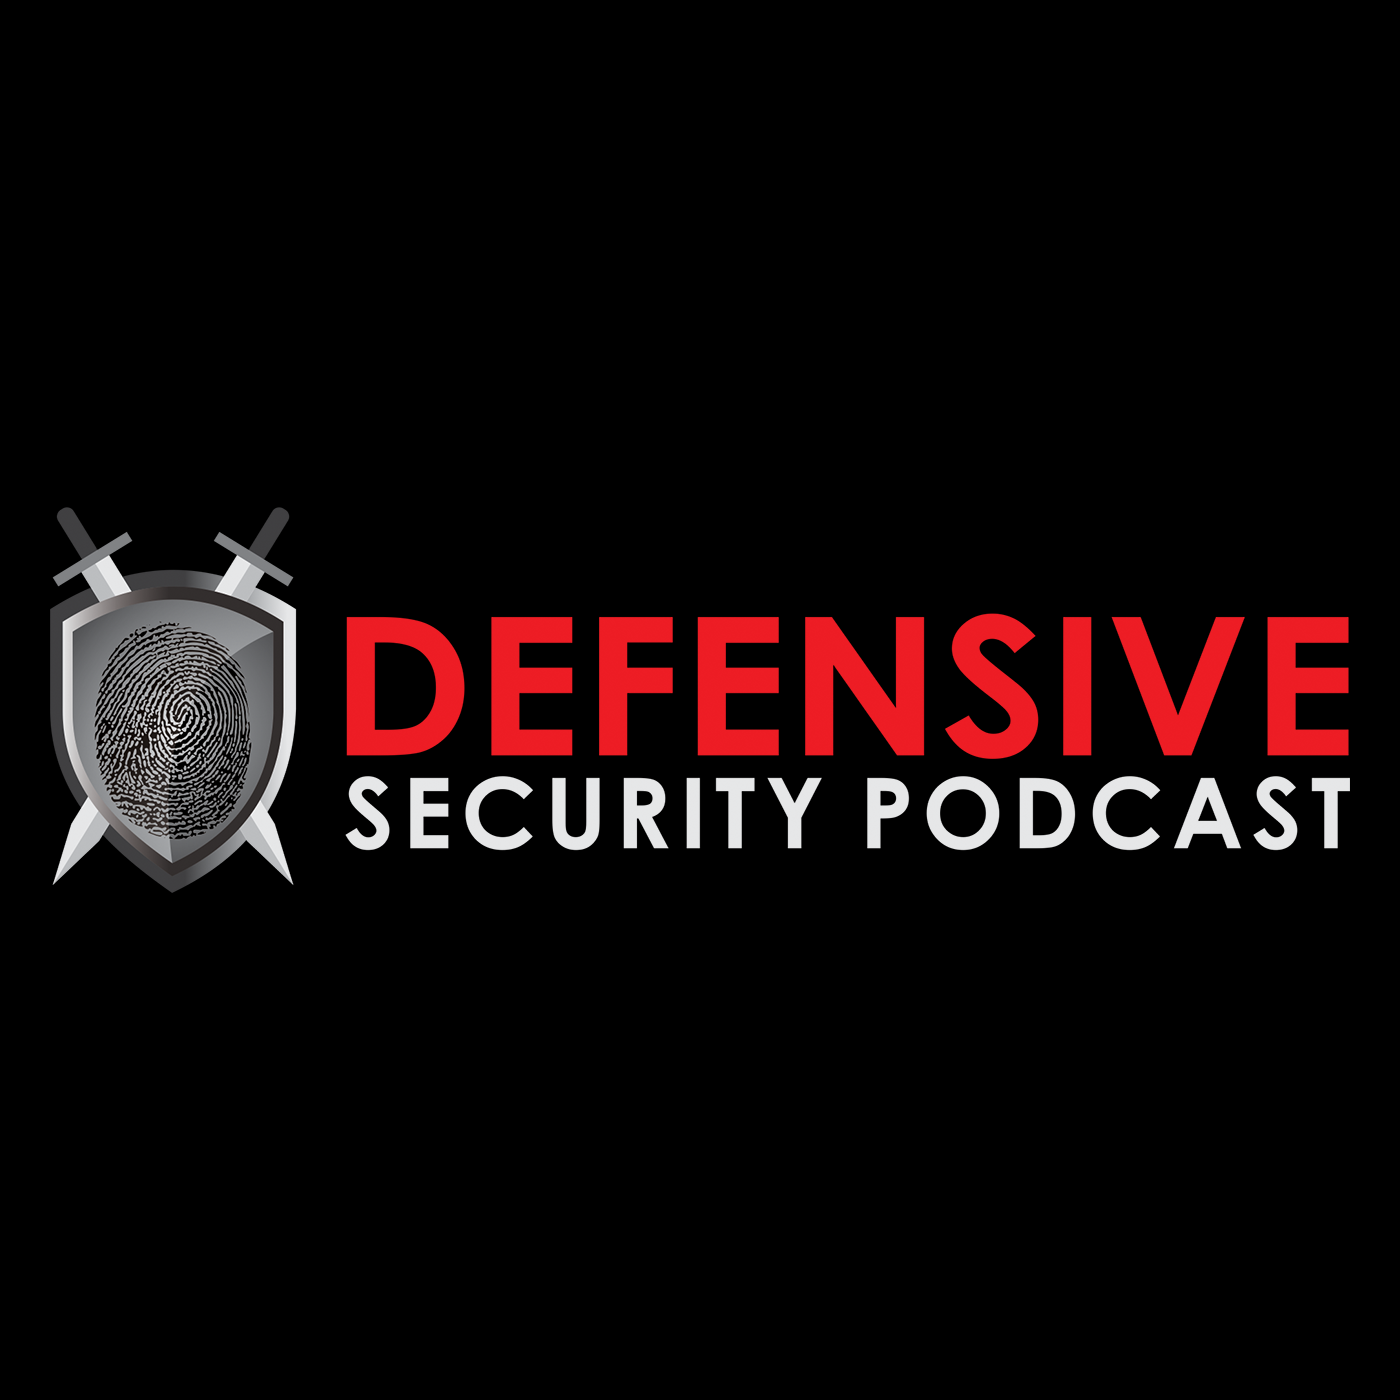 Defensive Security Podcast Episode 246